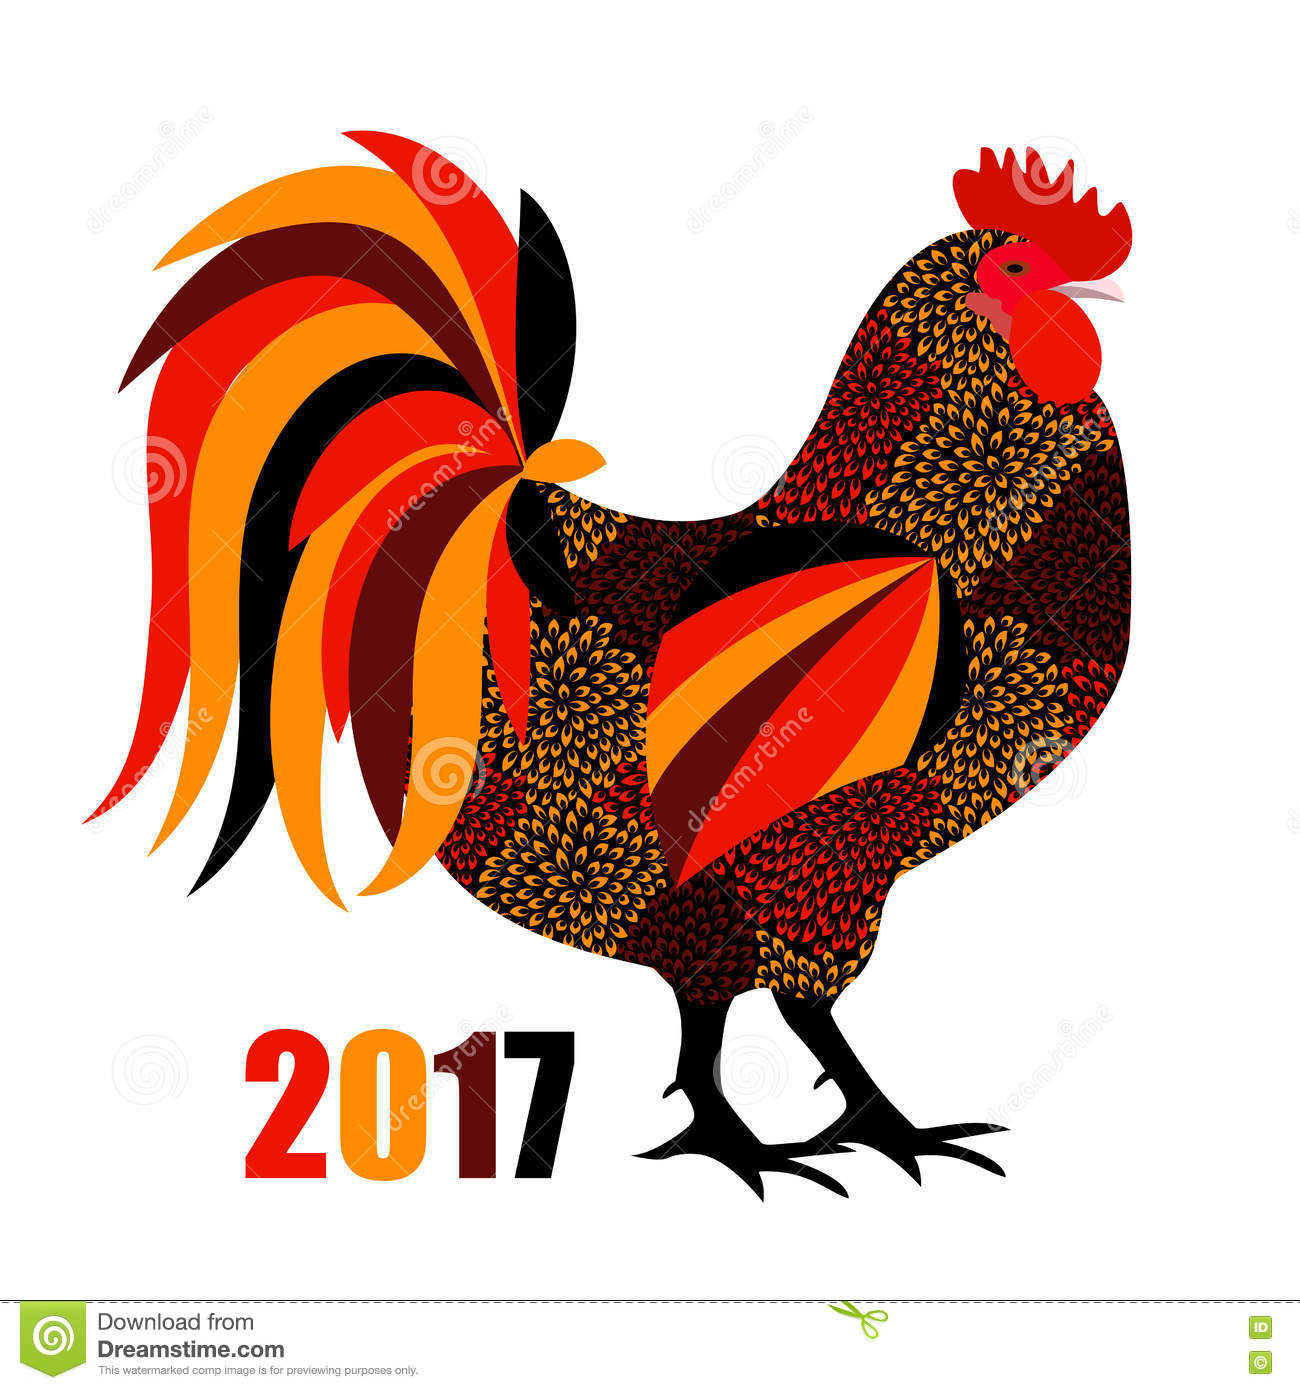 Chinese Calendar Illustration : Vector illustration of red fire rooster symbol